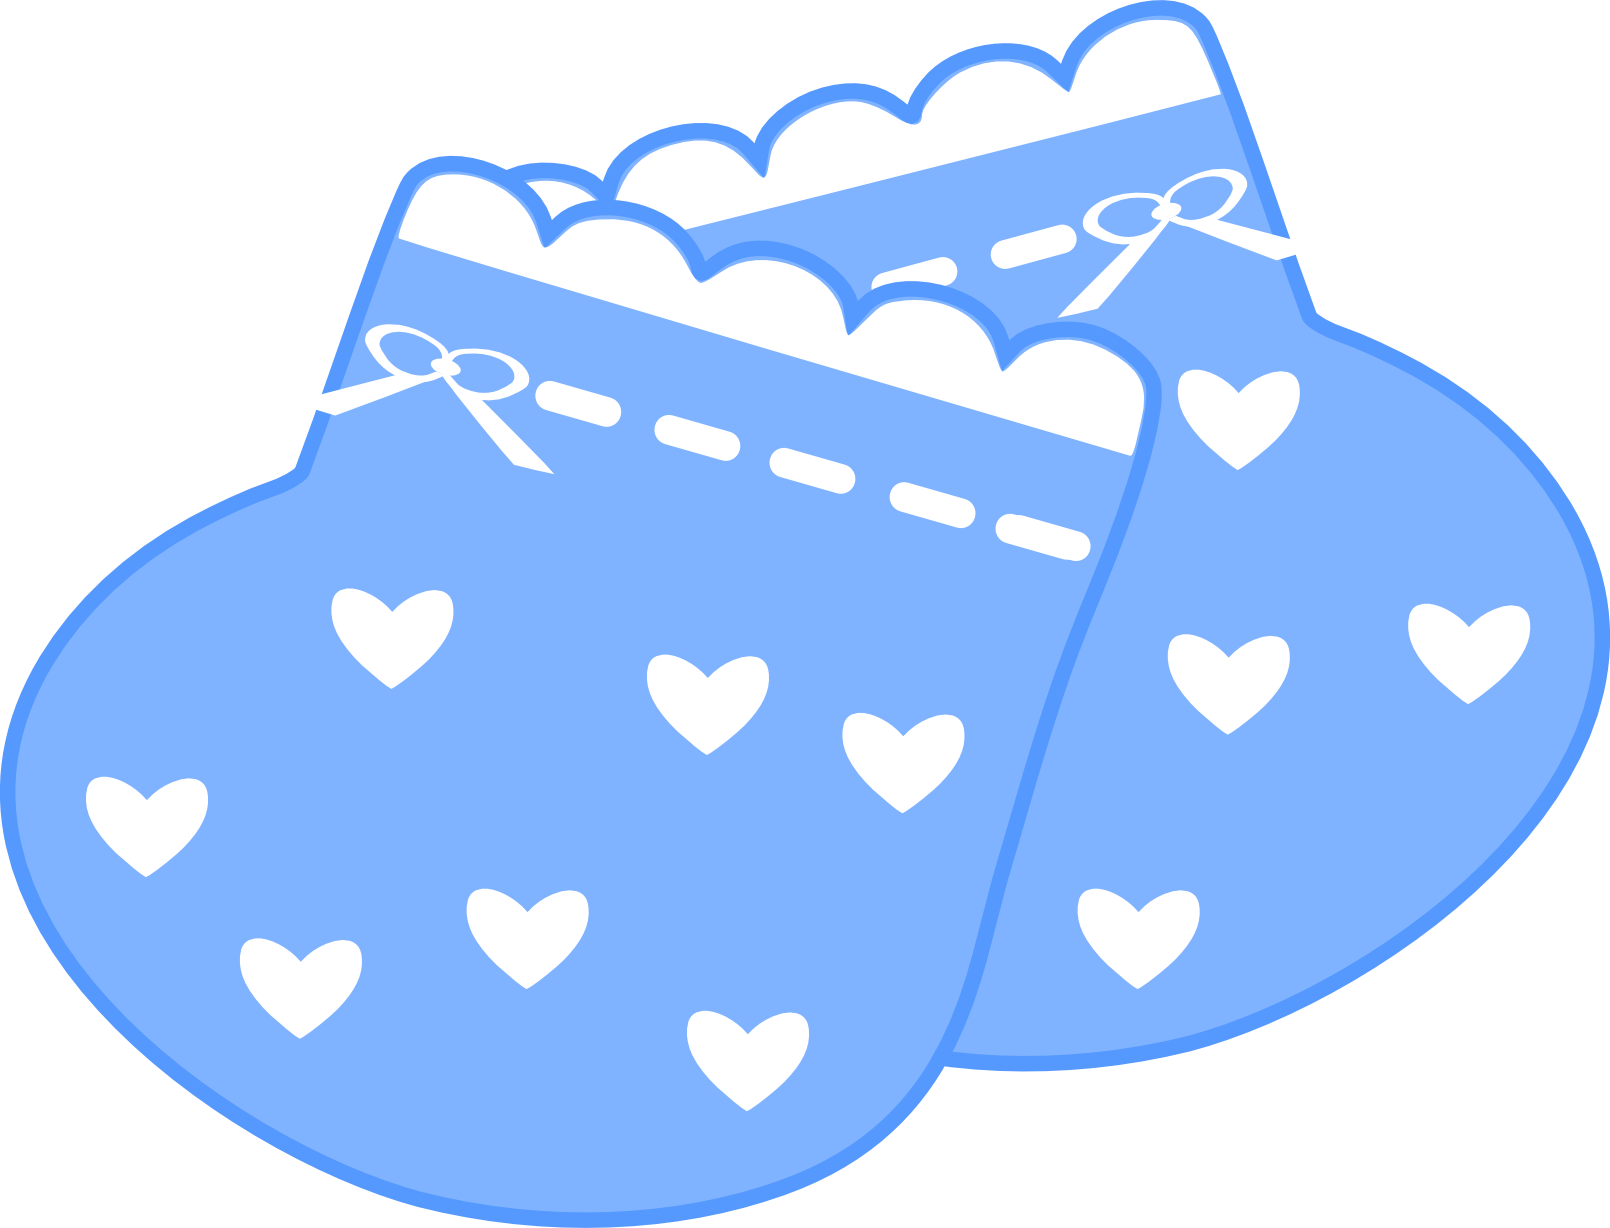 Scrapbook clipart baby boy. Booties group idea transparent